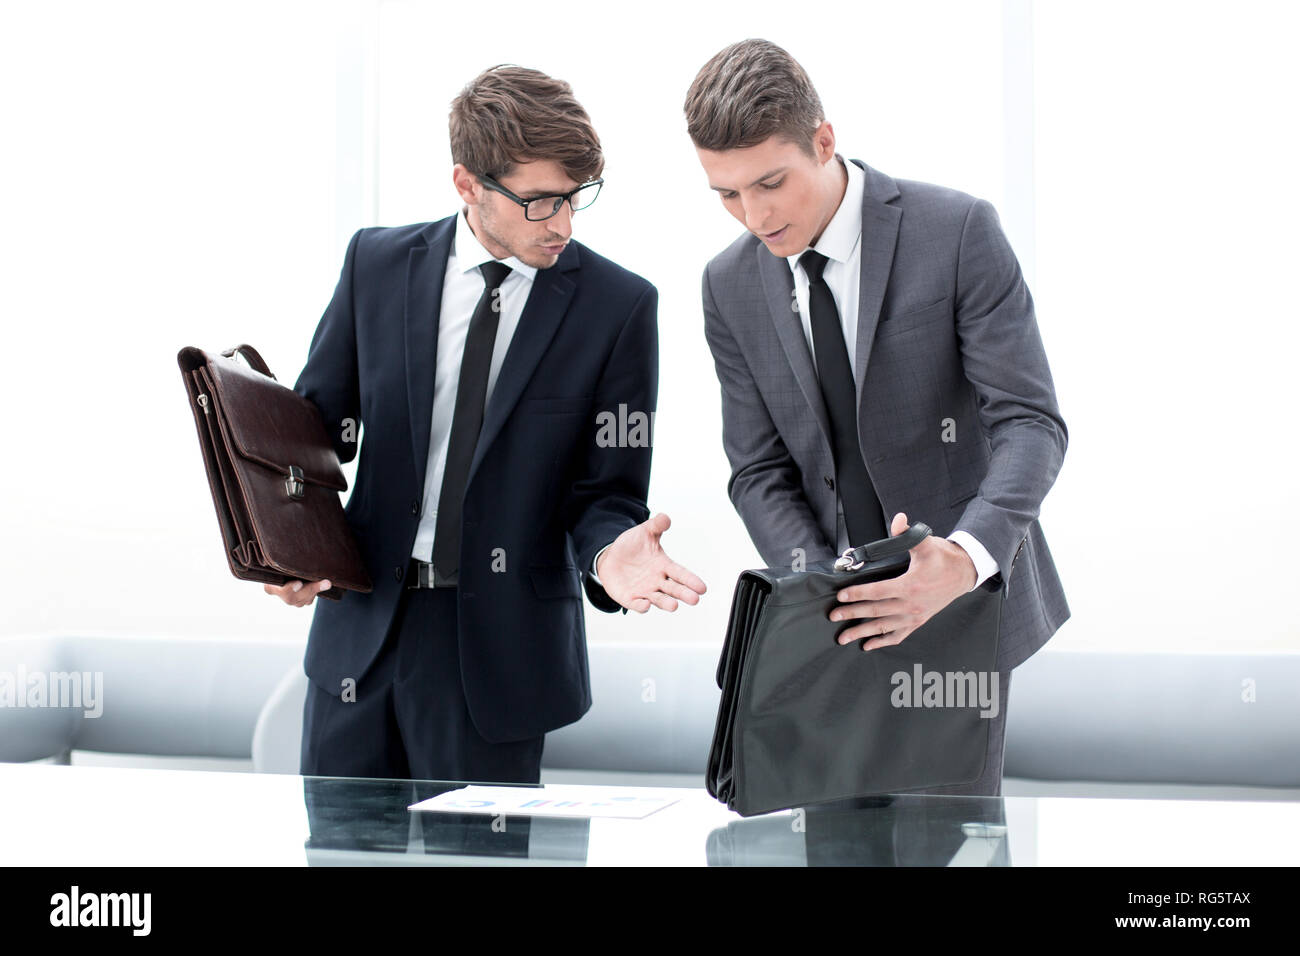 two business people discuss financial documents. - Stock Image